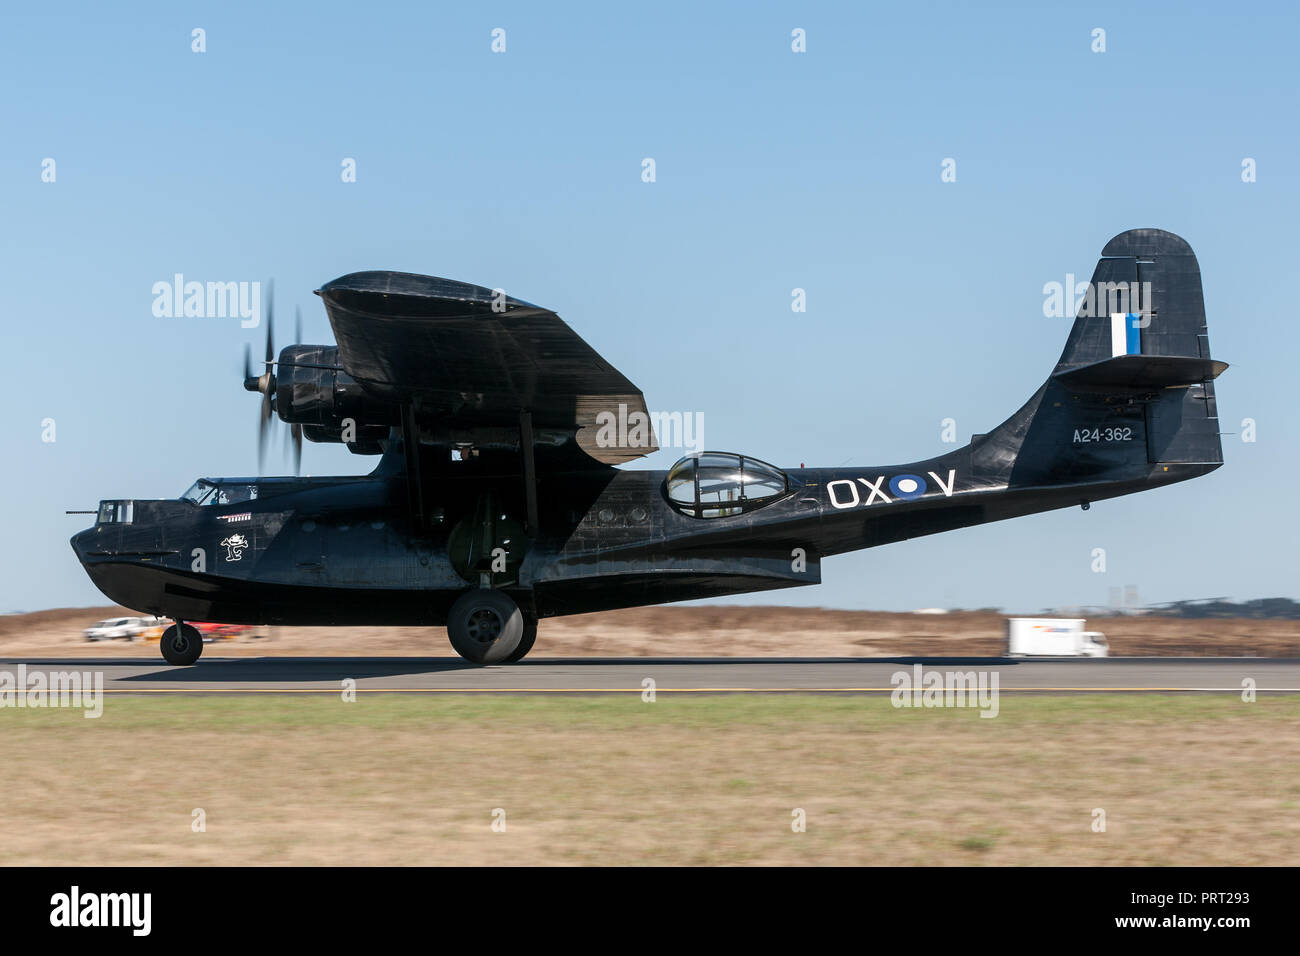 Consolidated PBY Catalina Flying boat VH-PBZ operated by the Historical Aircraft Restoration Society (HARS) wearing the famous ÔBlack CatsÕ livery fro Stock Photo